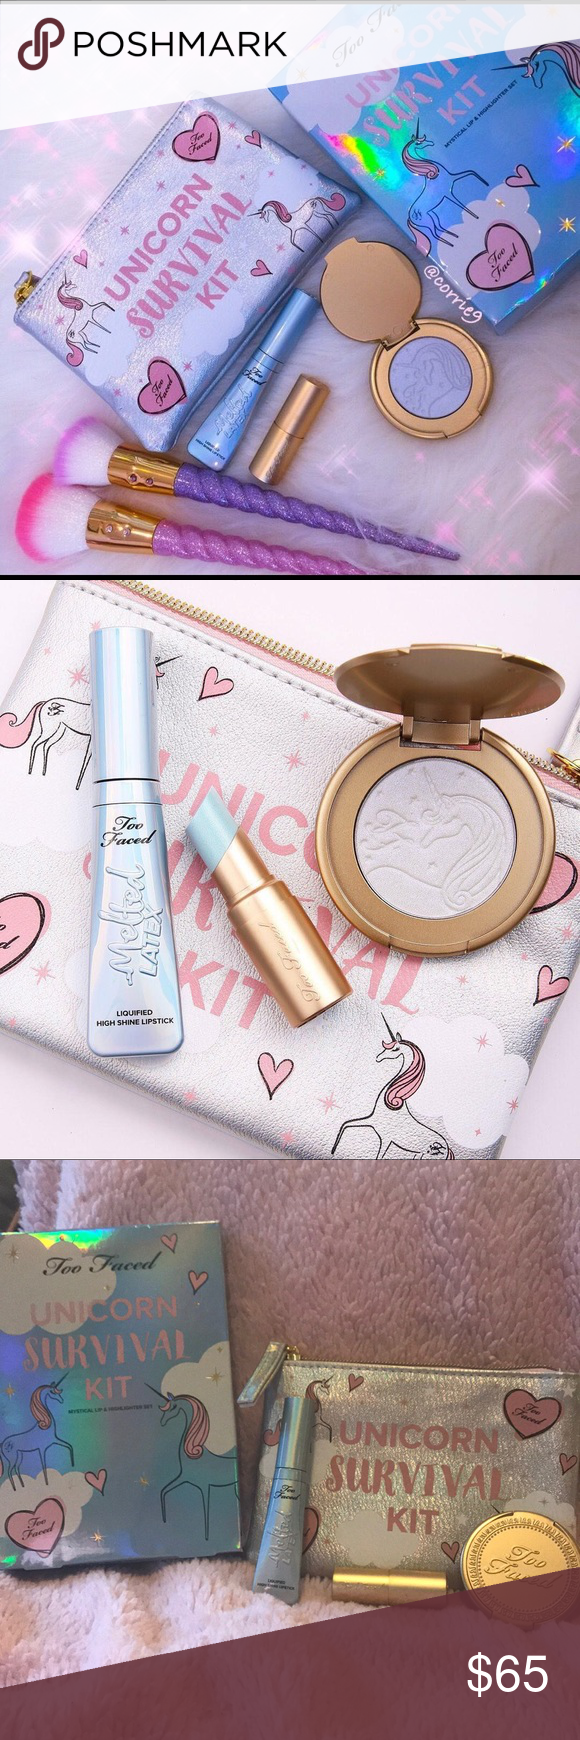 Too Faced UNICORN SURVIVAL KIT 🦄AUTHENTIC, BNIB 🌟🌟LIMITED